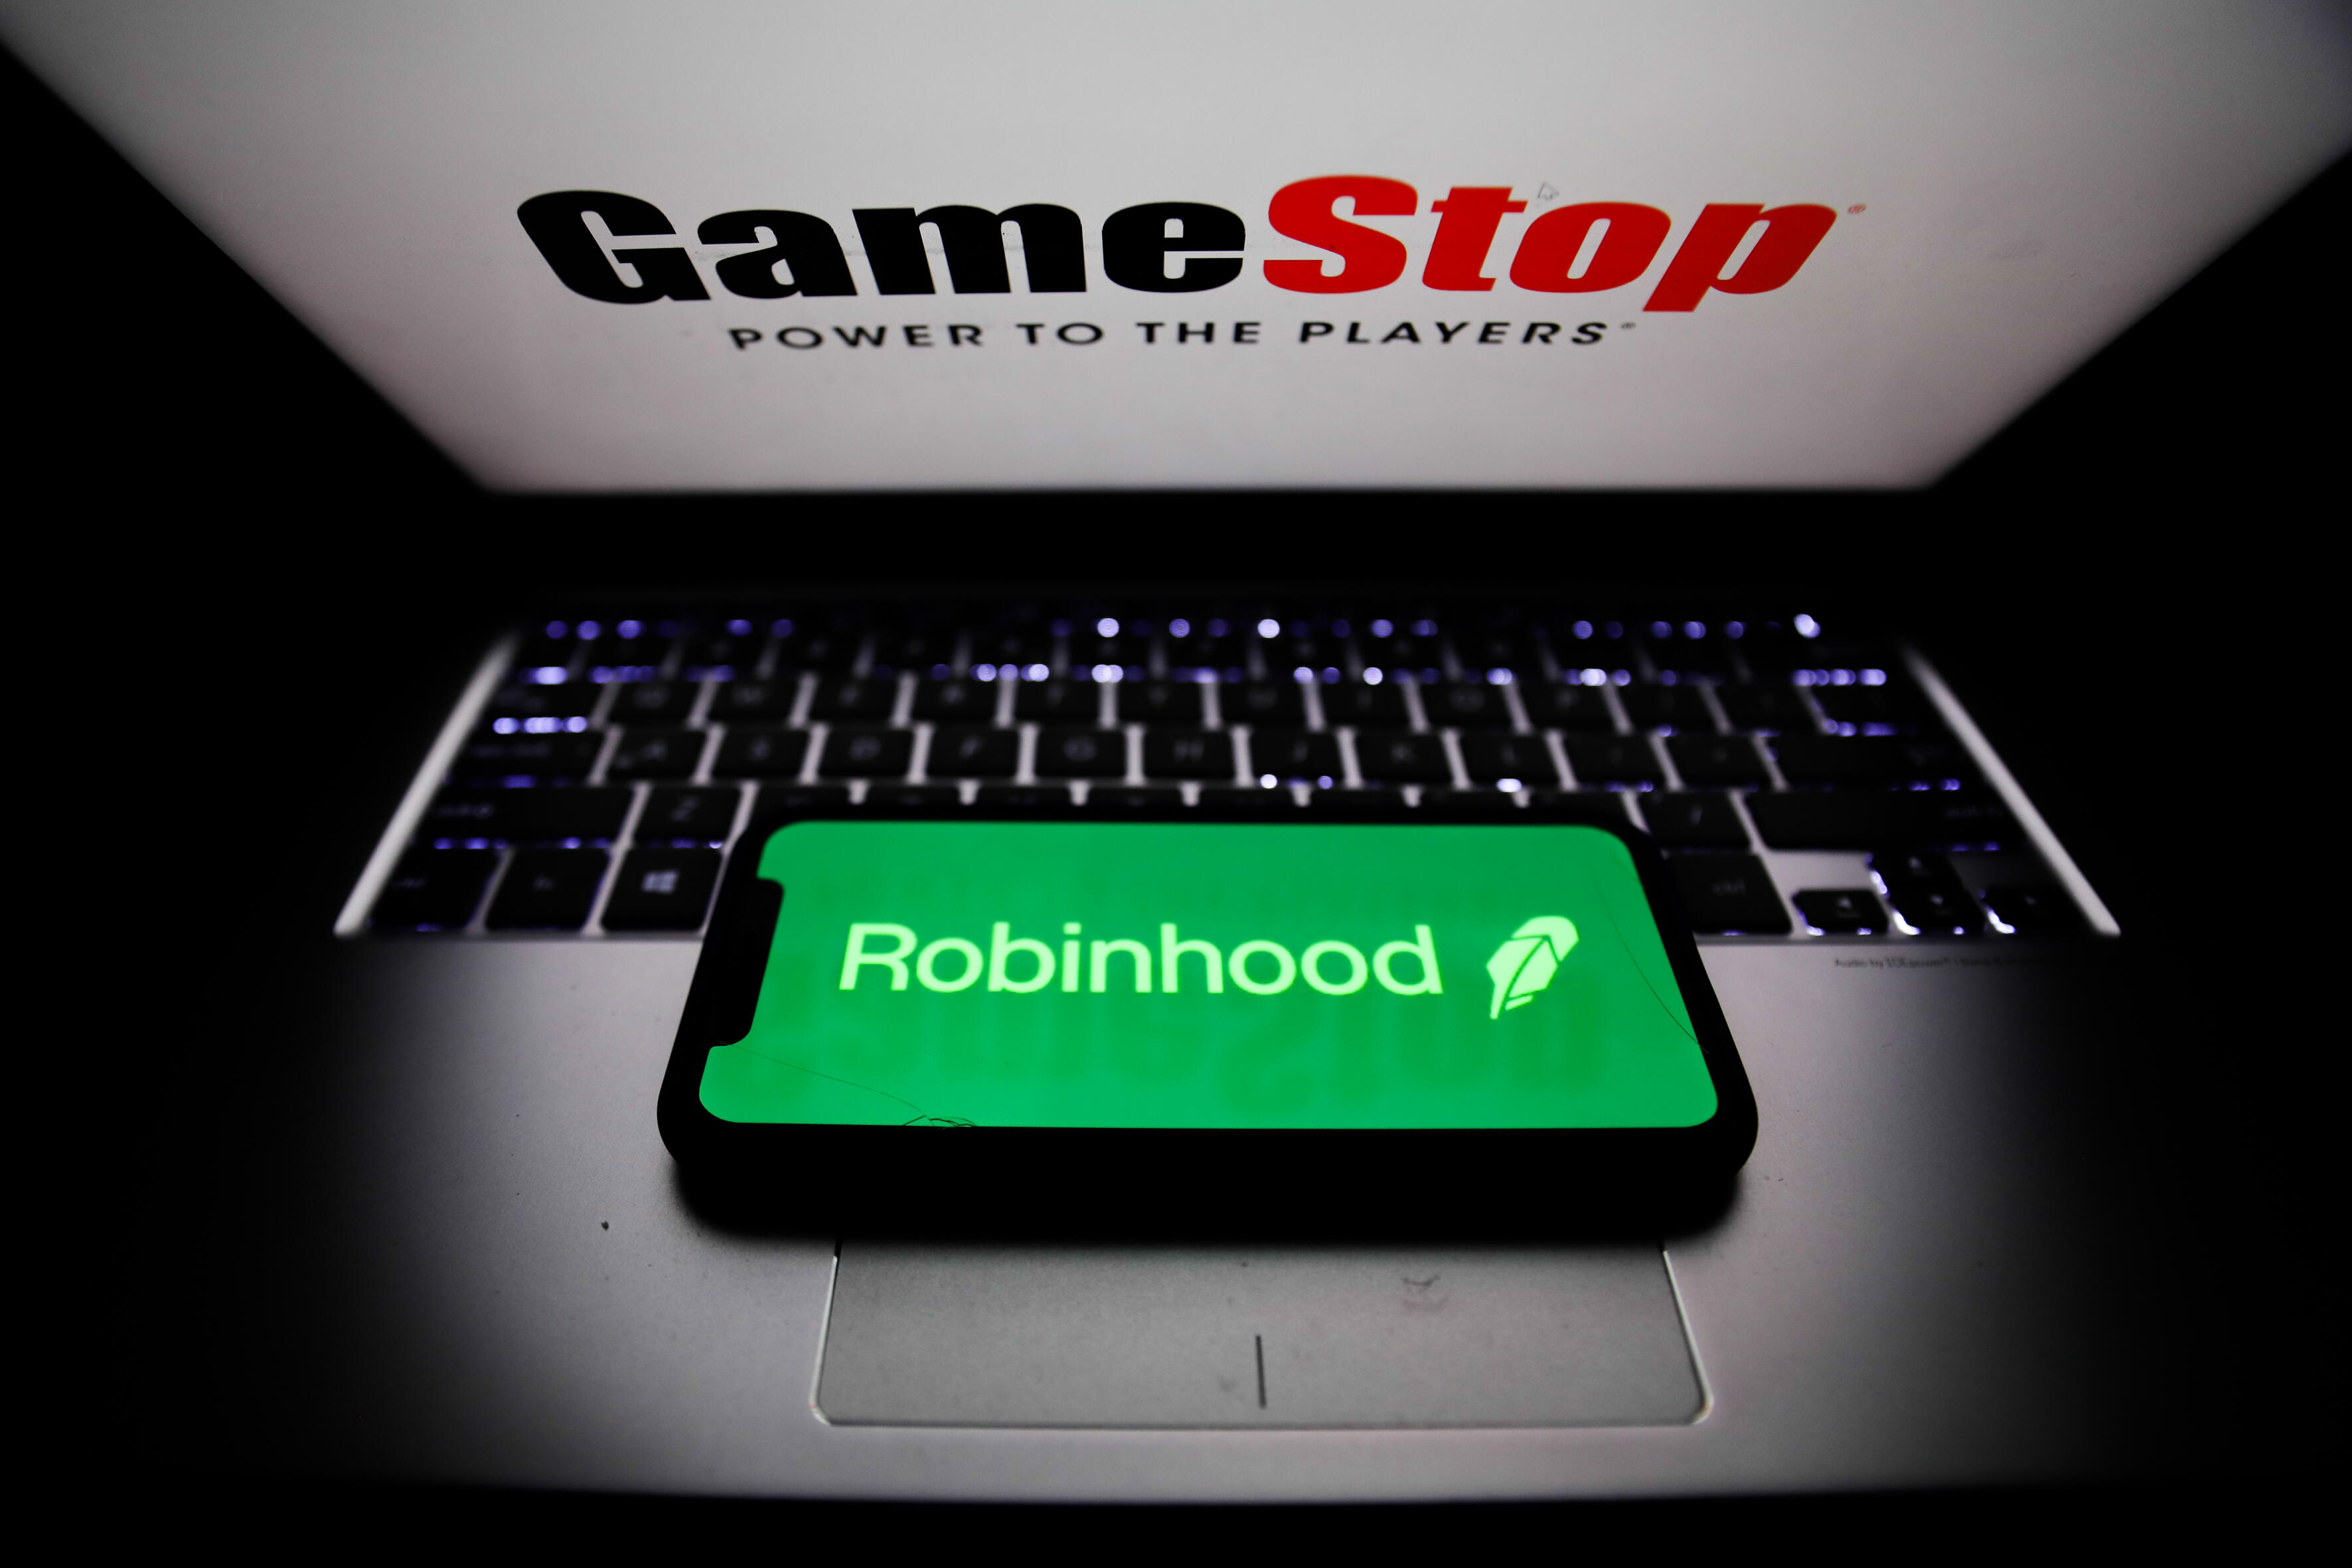 GameStop and Robinhood logos